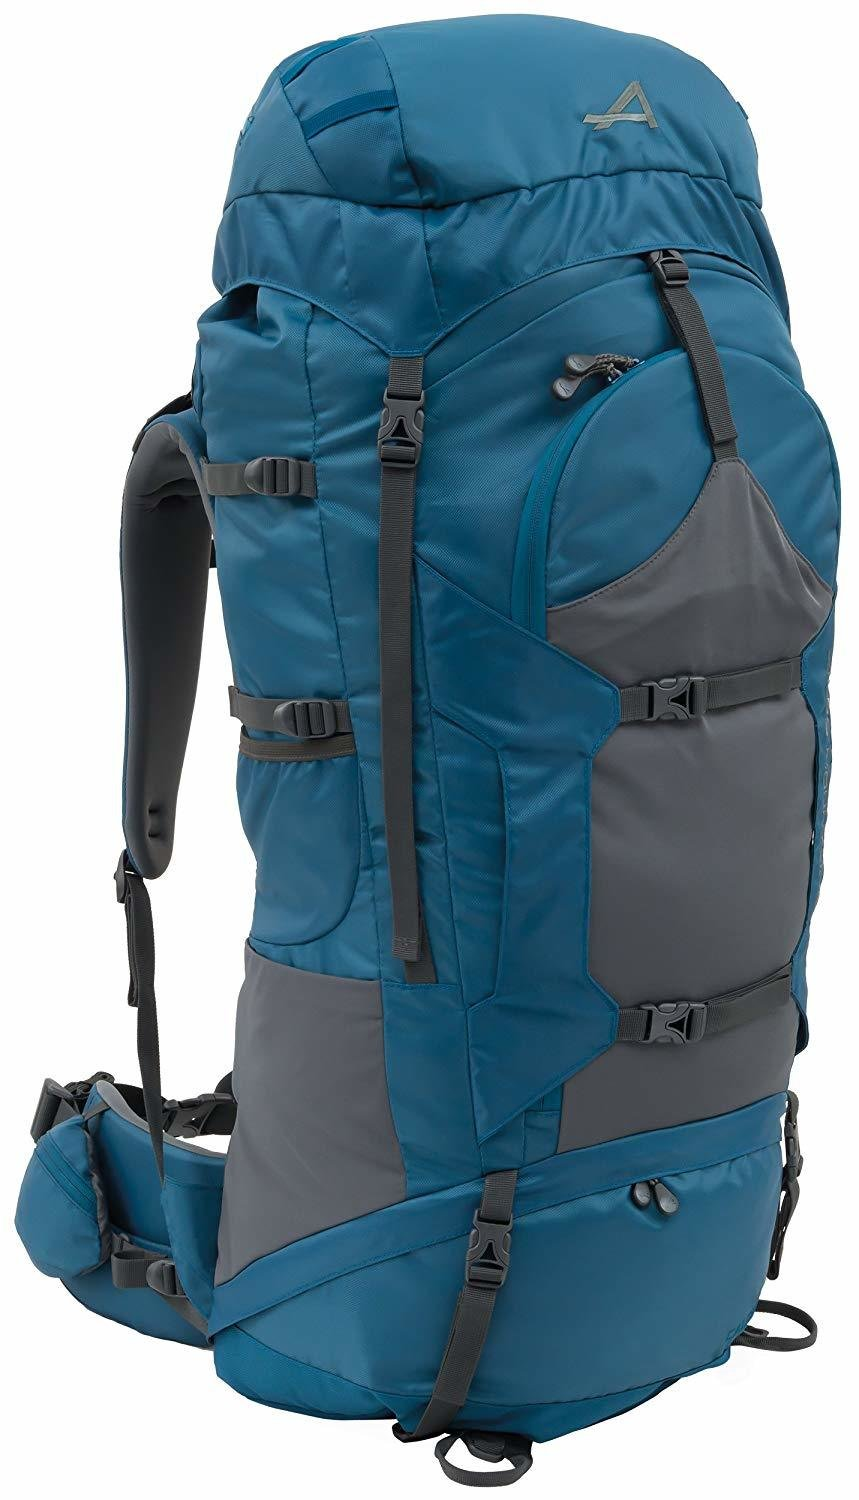 ALPS Mountaineering Caldera 90L Backpack - Adjustable Fit